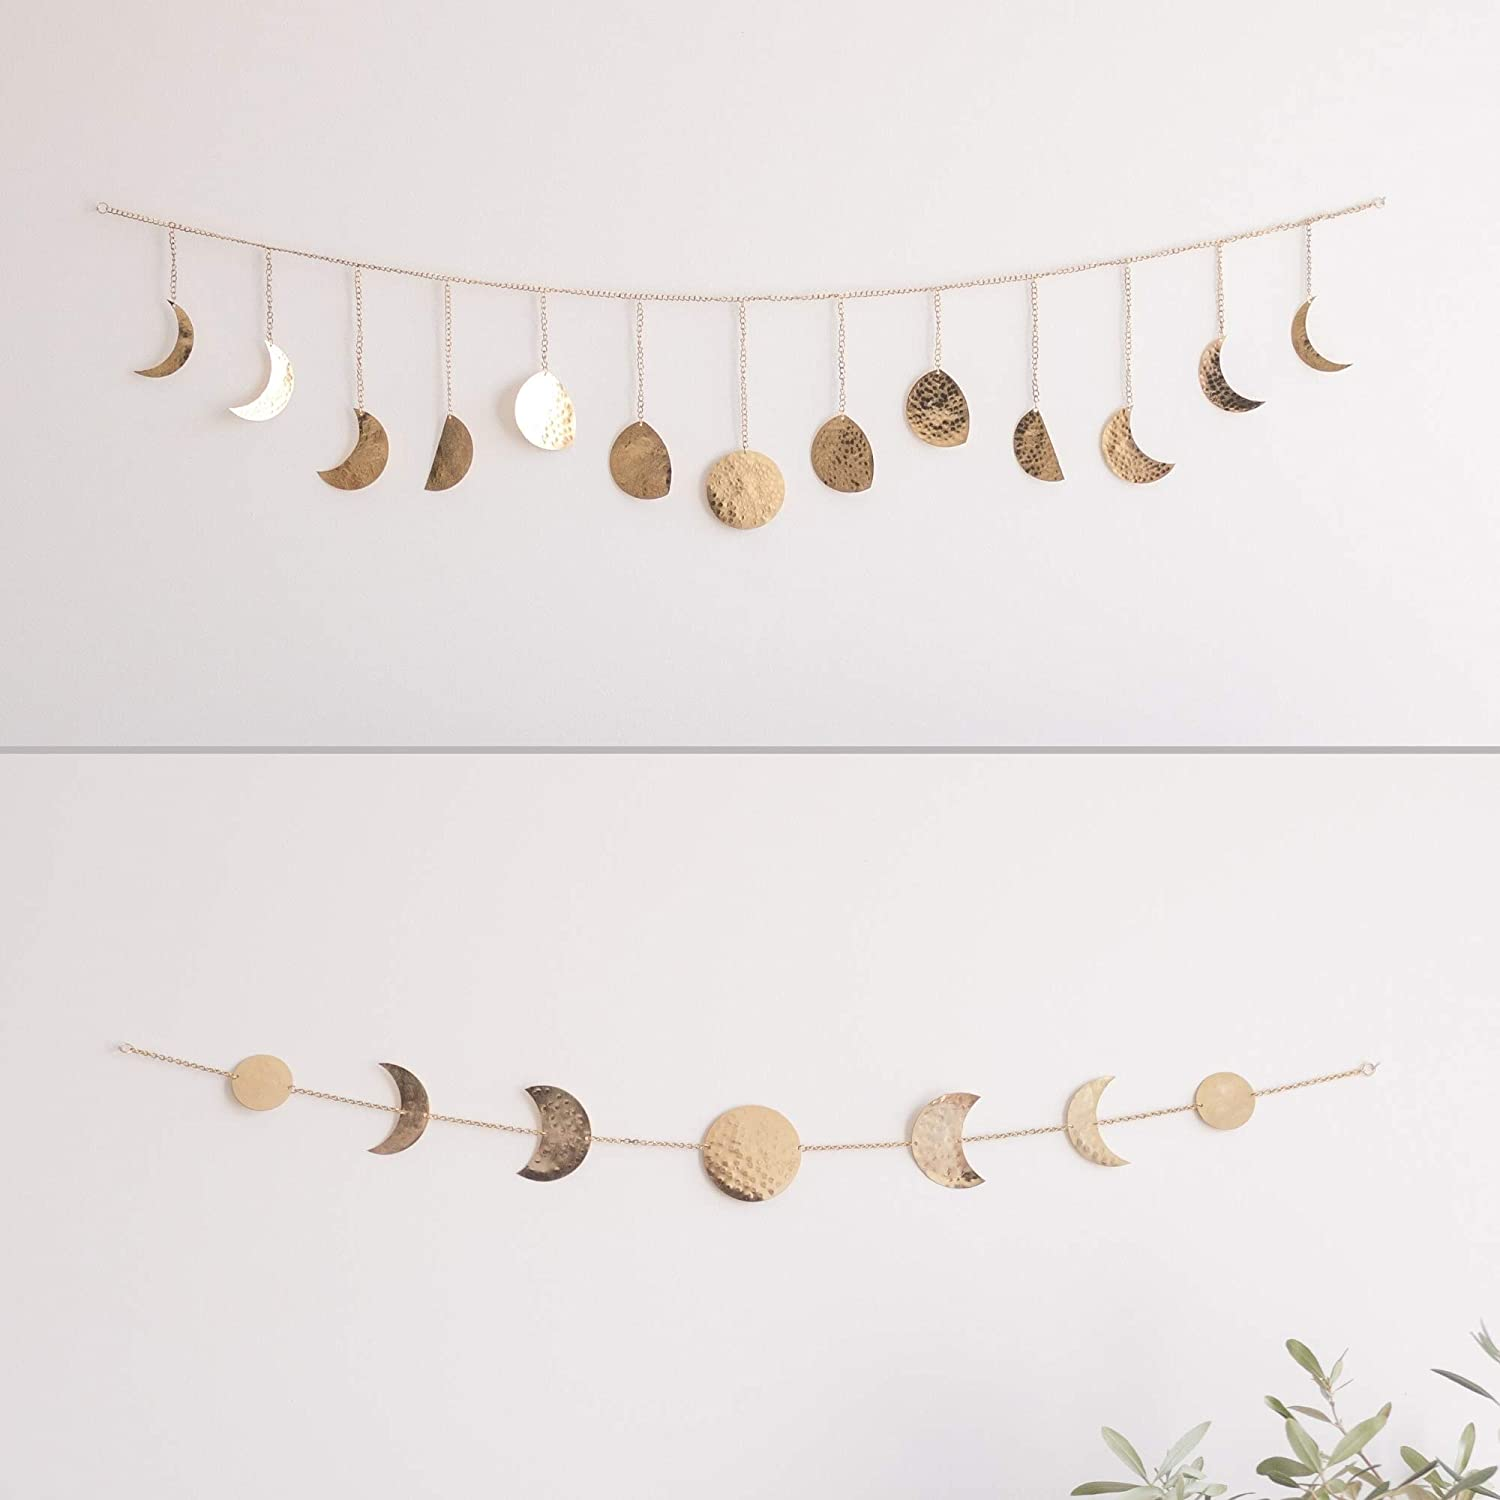 BASE ROOTS Moon Decor Wall Decorations | Handmade Hammered Detailing | Boho Accents Wall Decor | Moon Phases Wall Art | Moon Phases Wall Hanging | Bohemian Decor for Bedroom, Home, Living Room Apartme